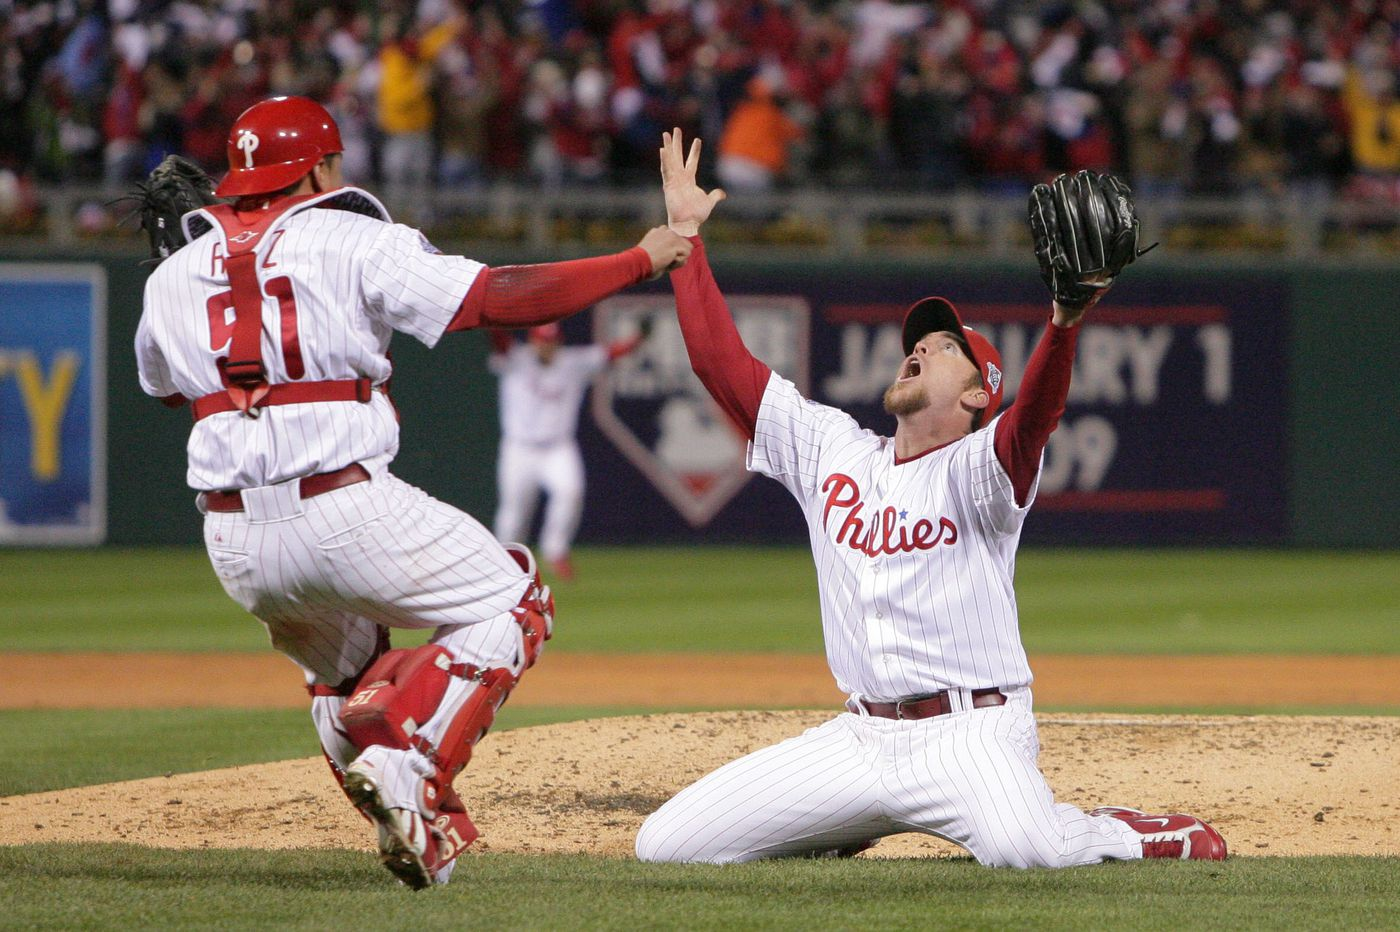 Jamie Moyer wants to know: Where were you when the Phillies won the World Series?